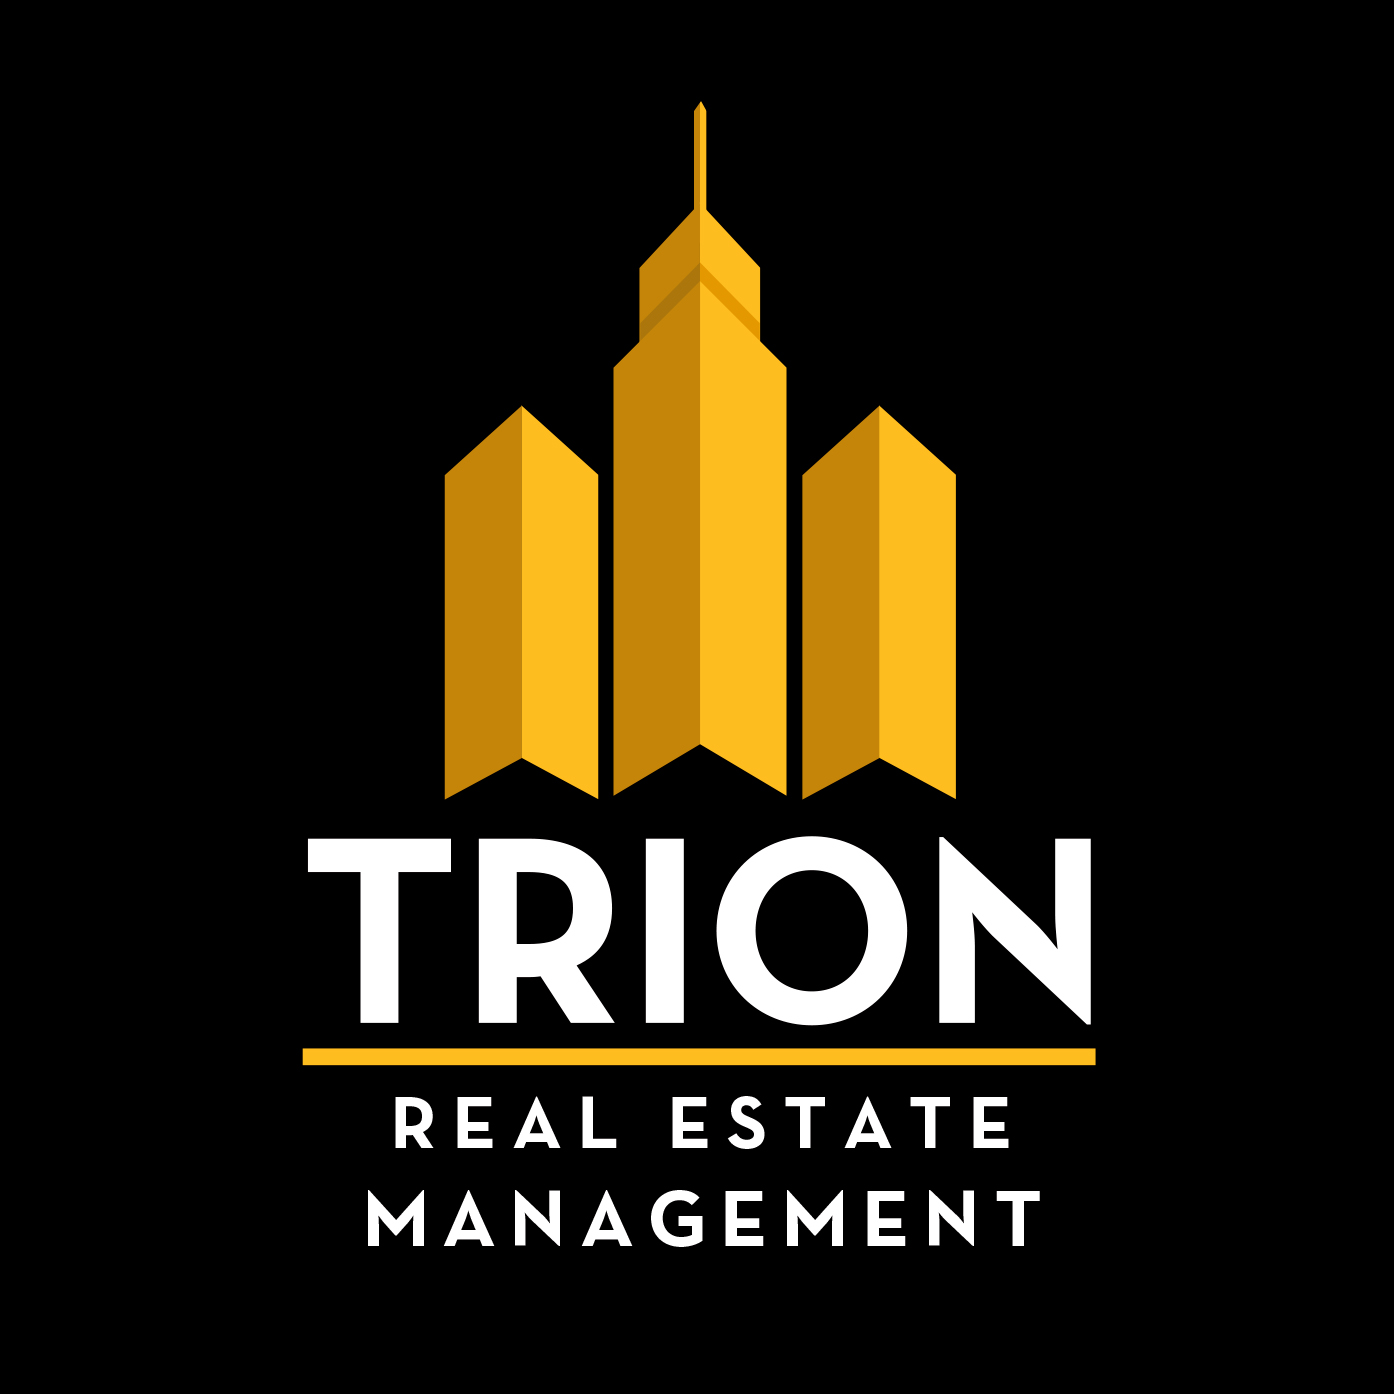 Trion Real Estate Management